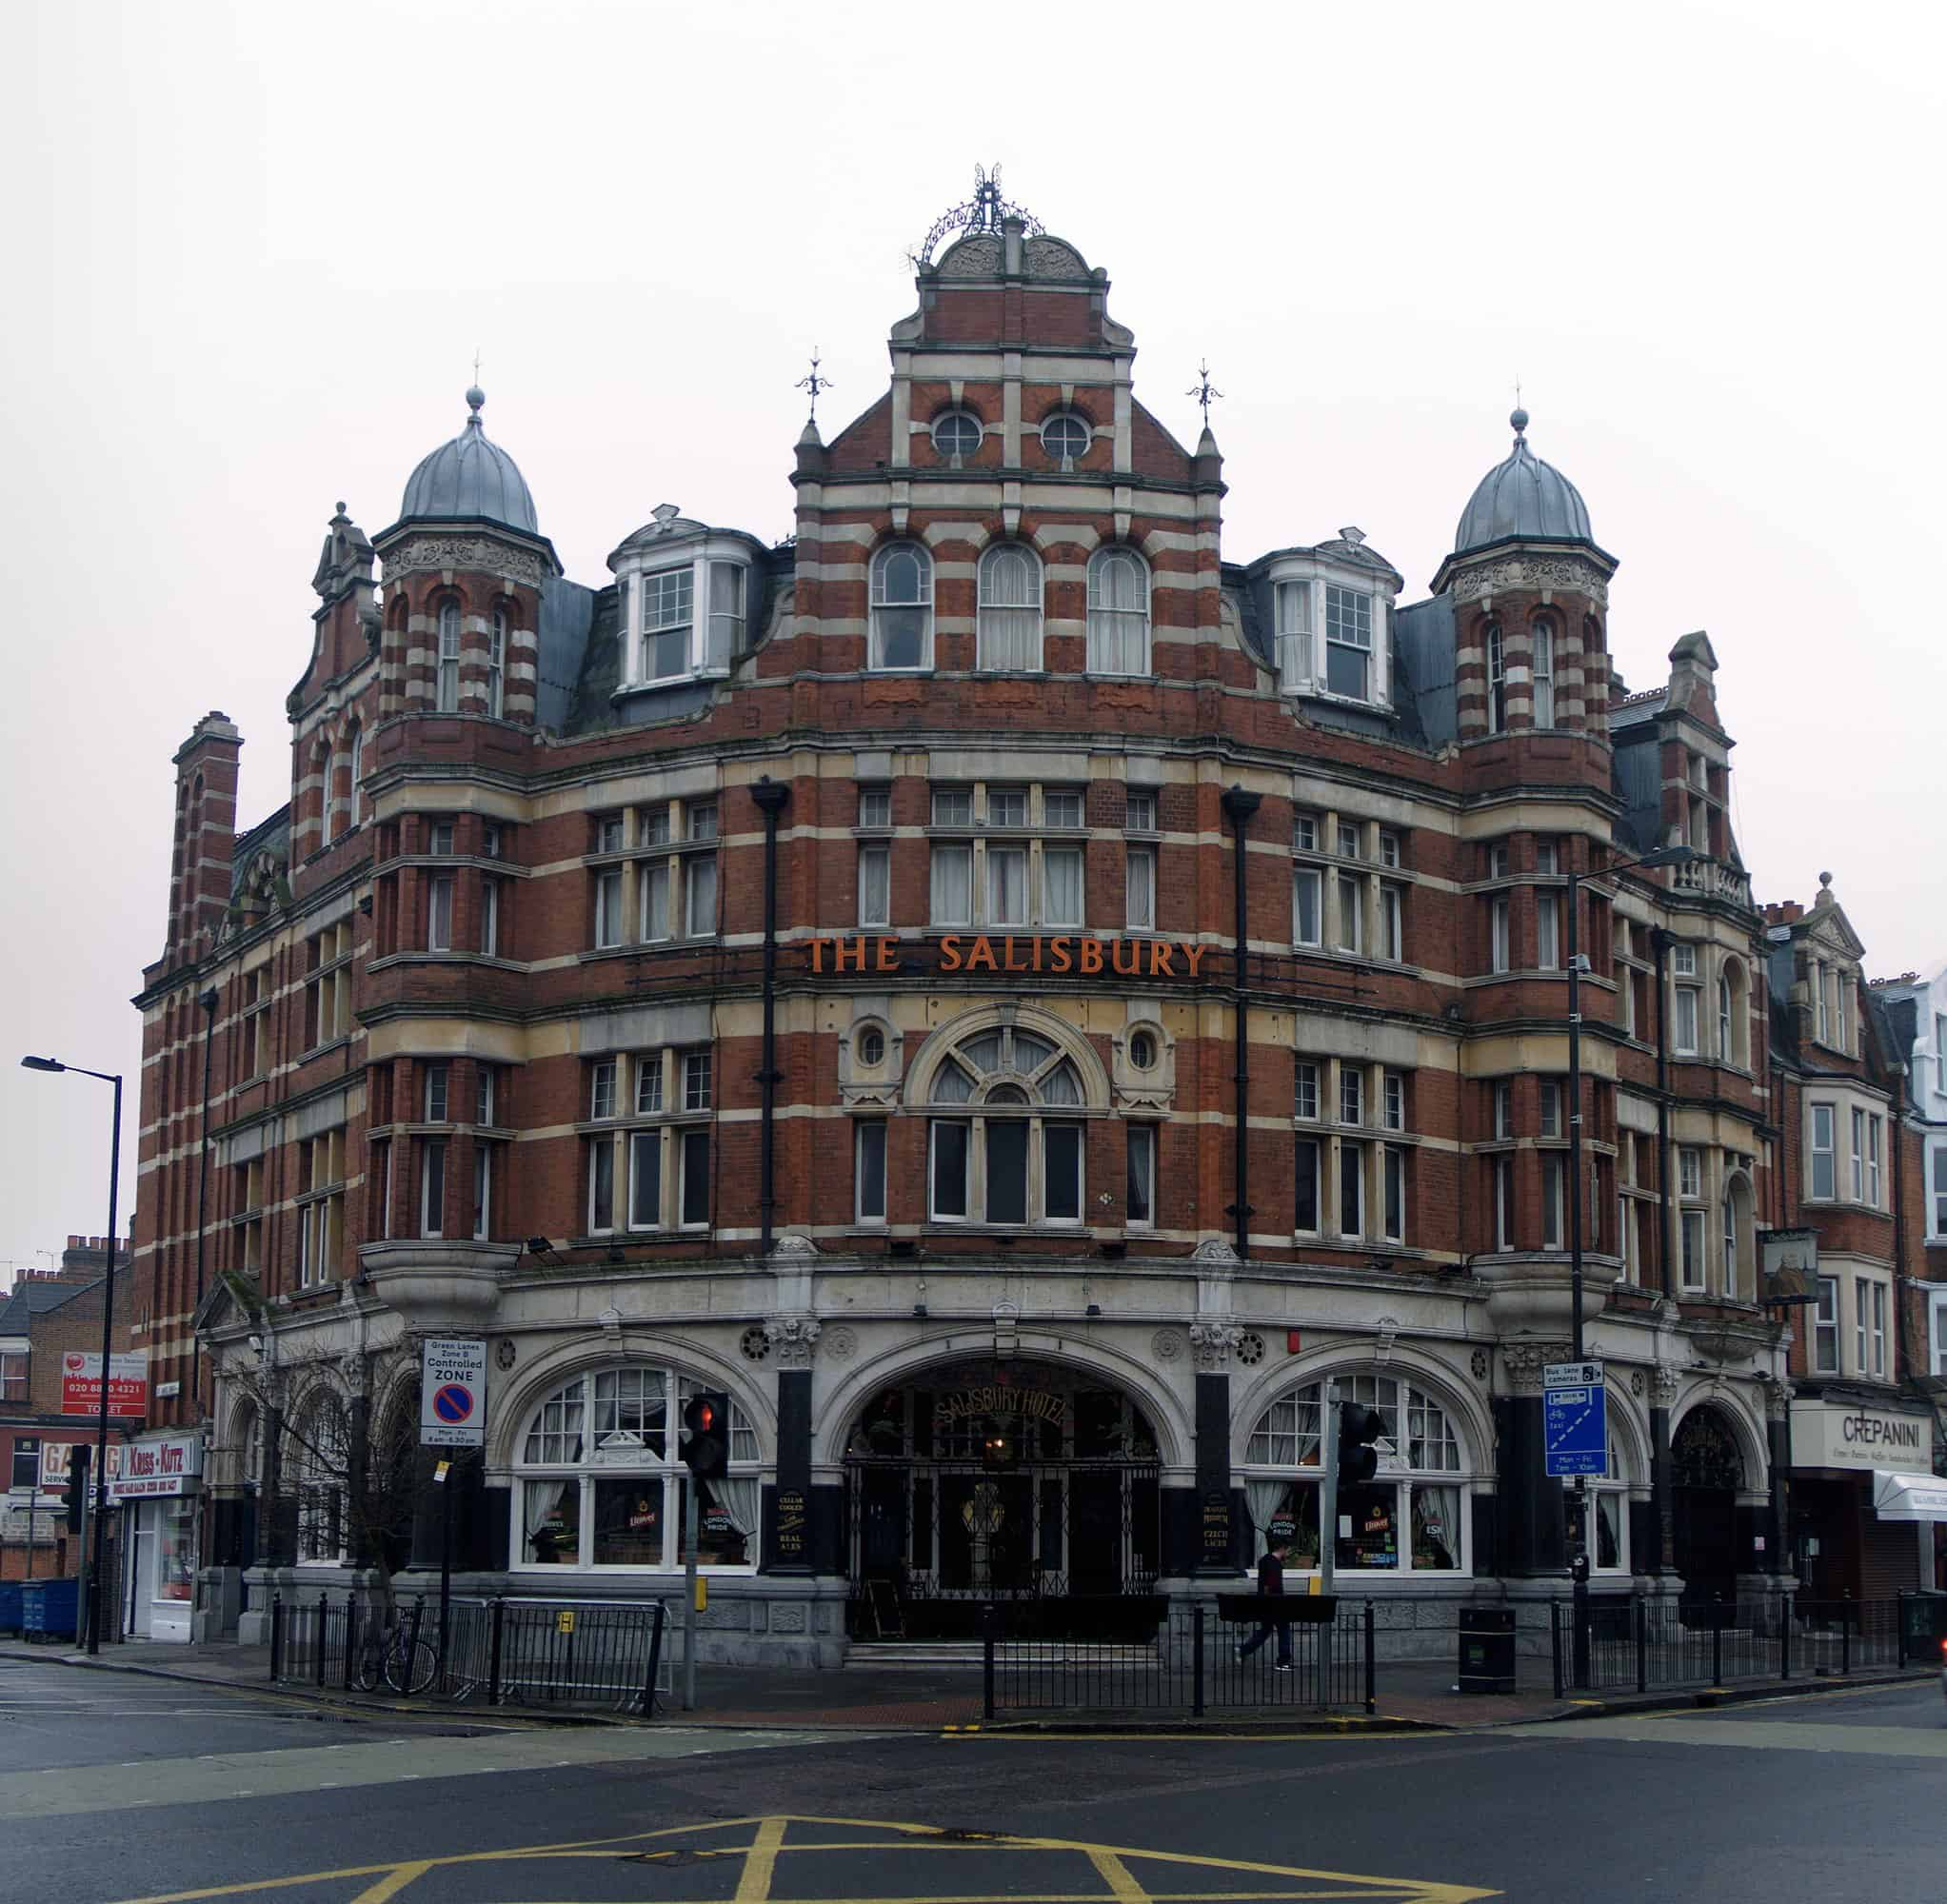 Best pubs in North London The Salisbury Hotel | N19±, CC BY-SA 3.0, via Wikimedia Commons